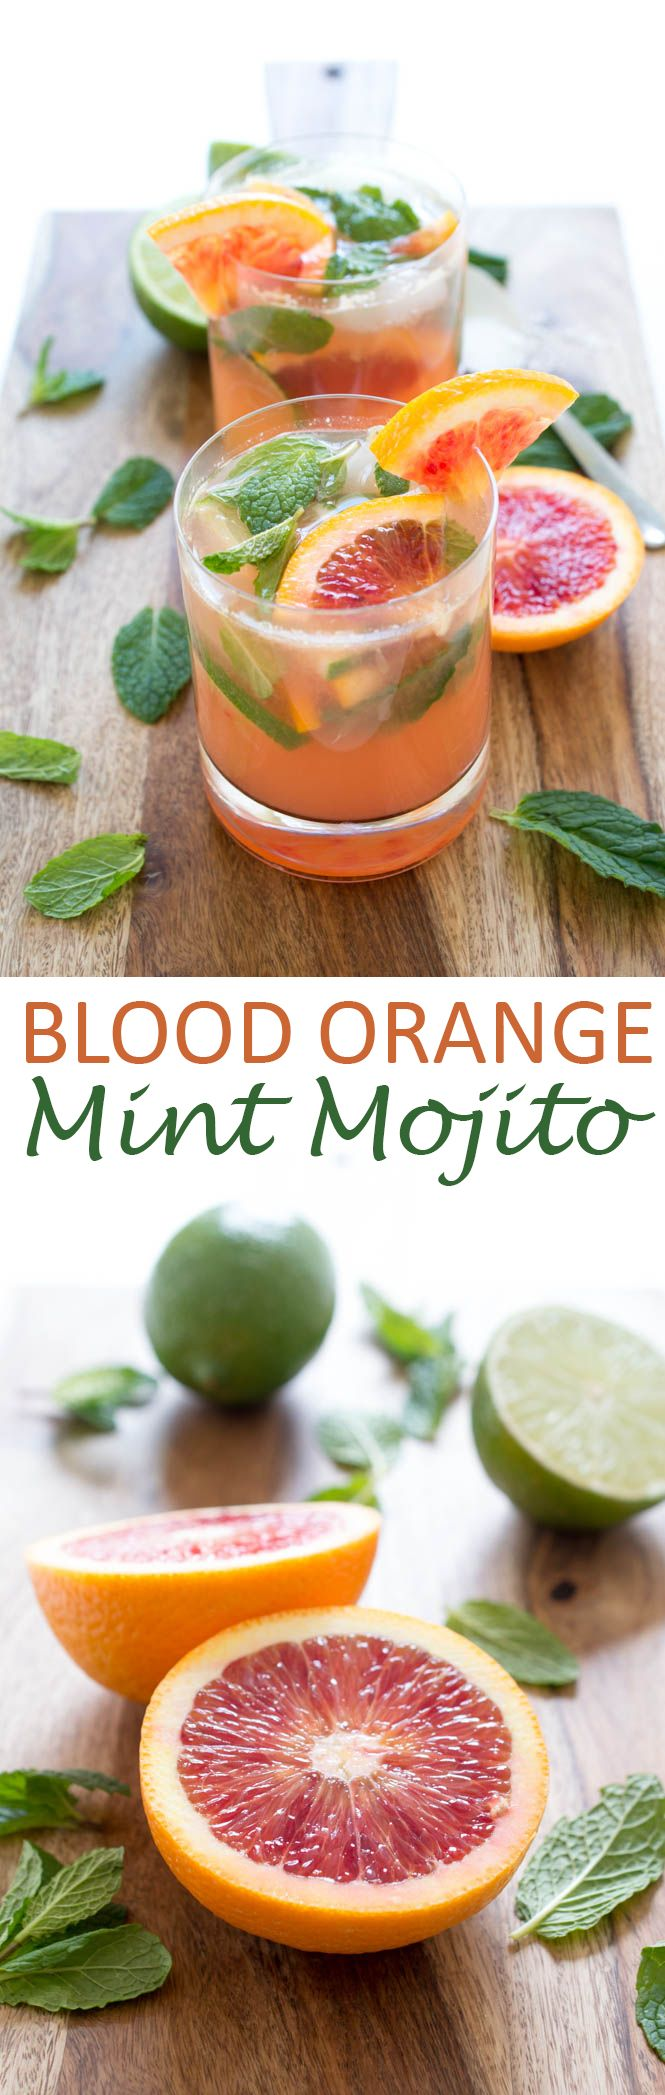 Blood Orange Mojito made with fresh mint, simple syrup, blood orange and lime juice.